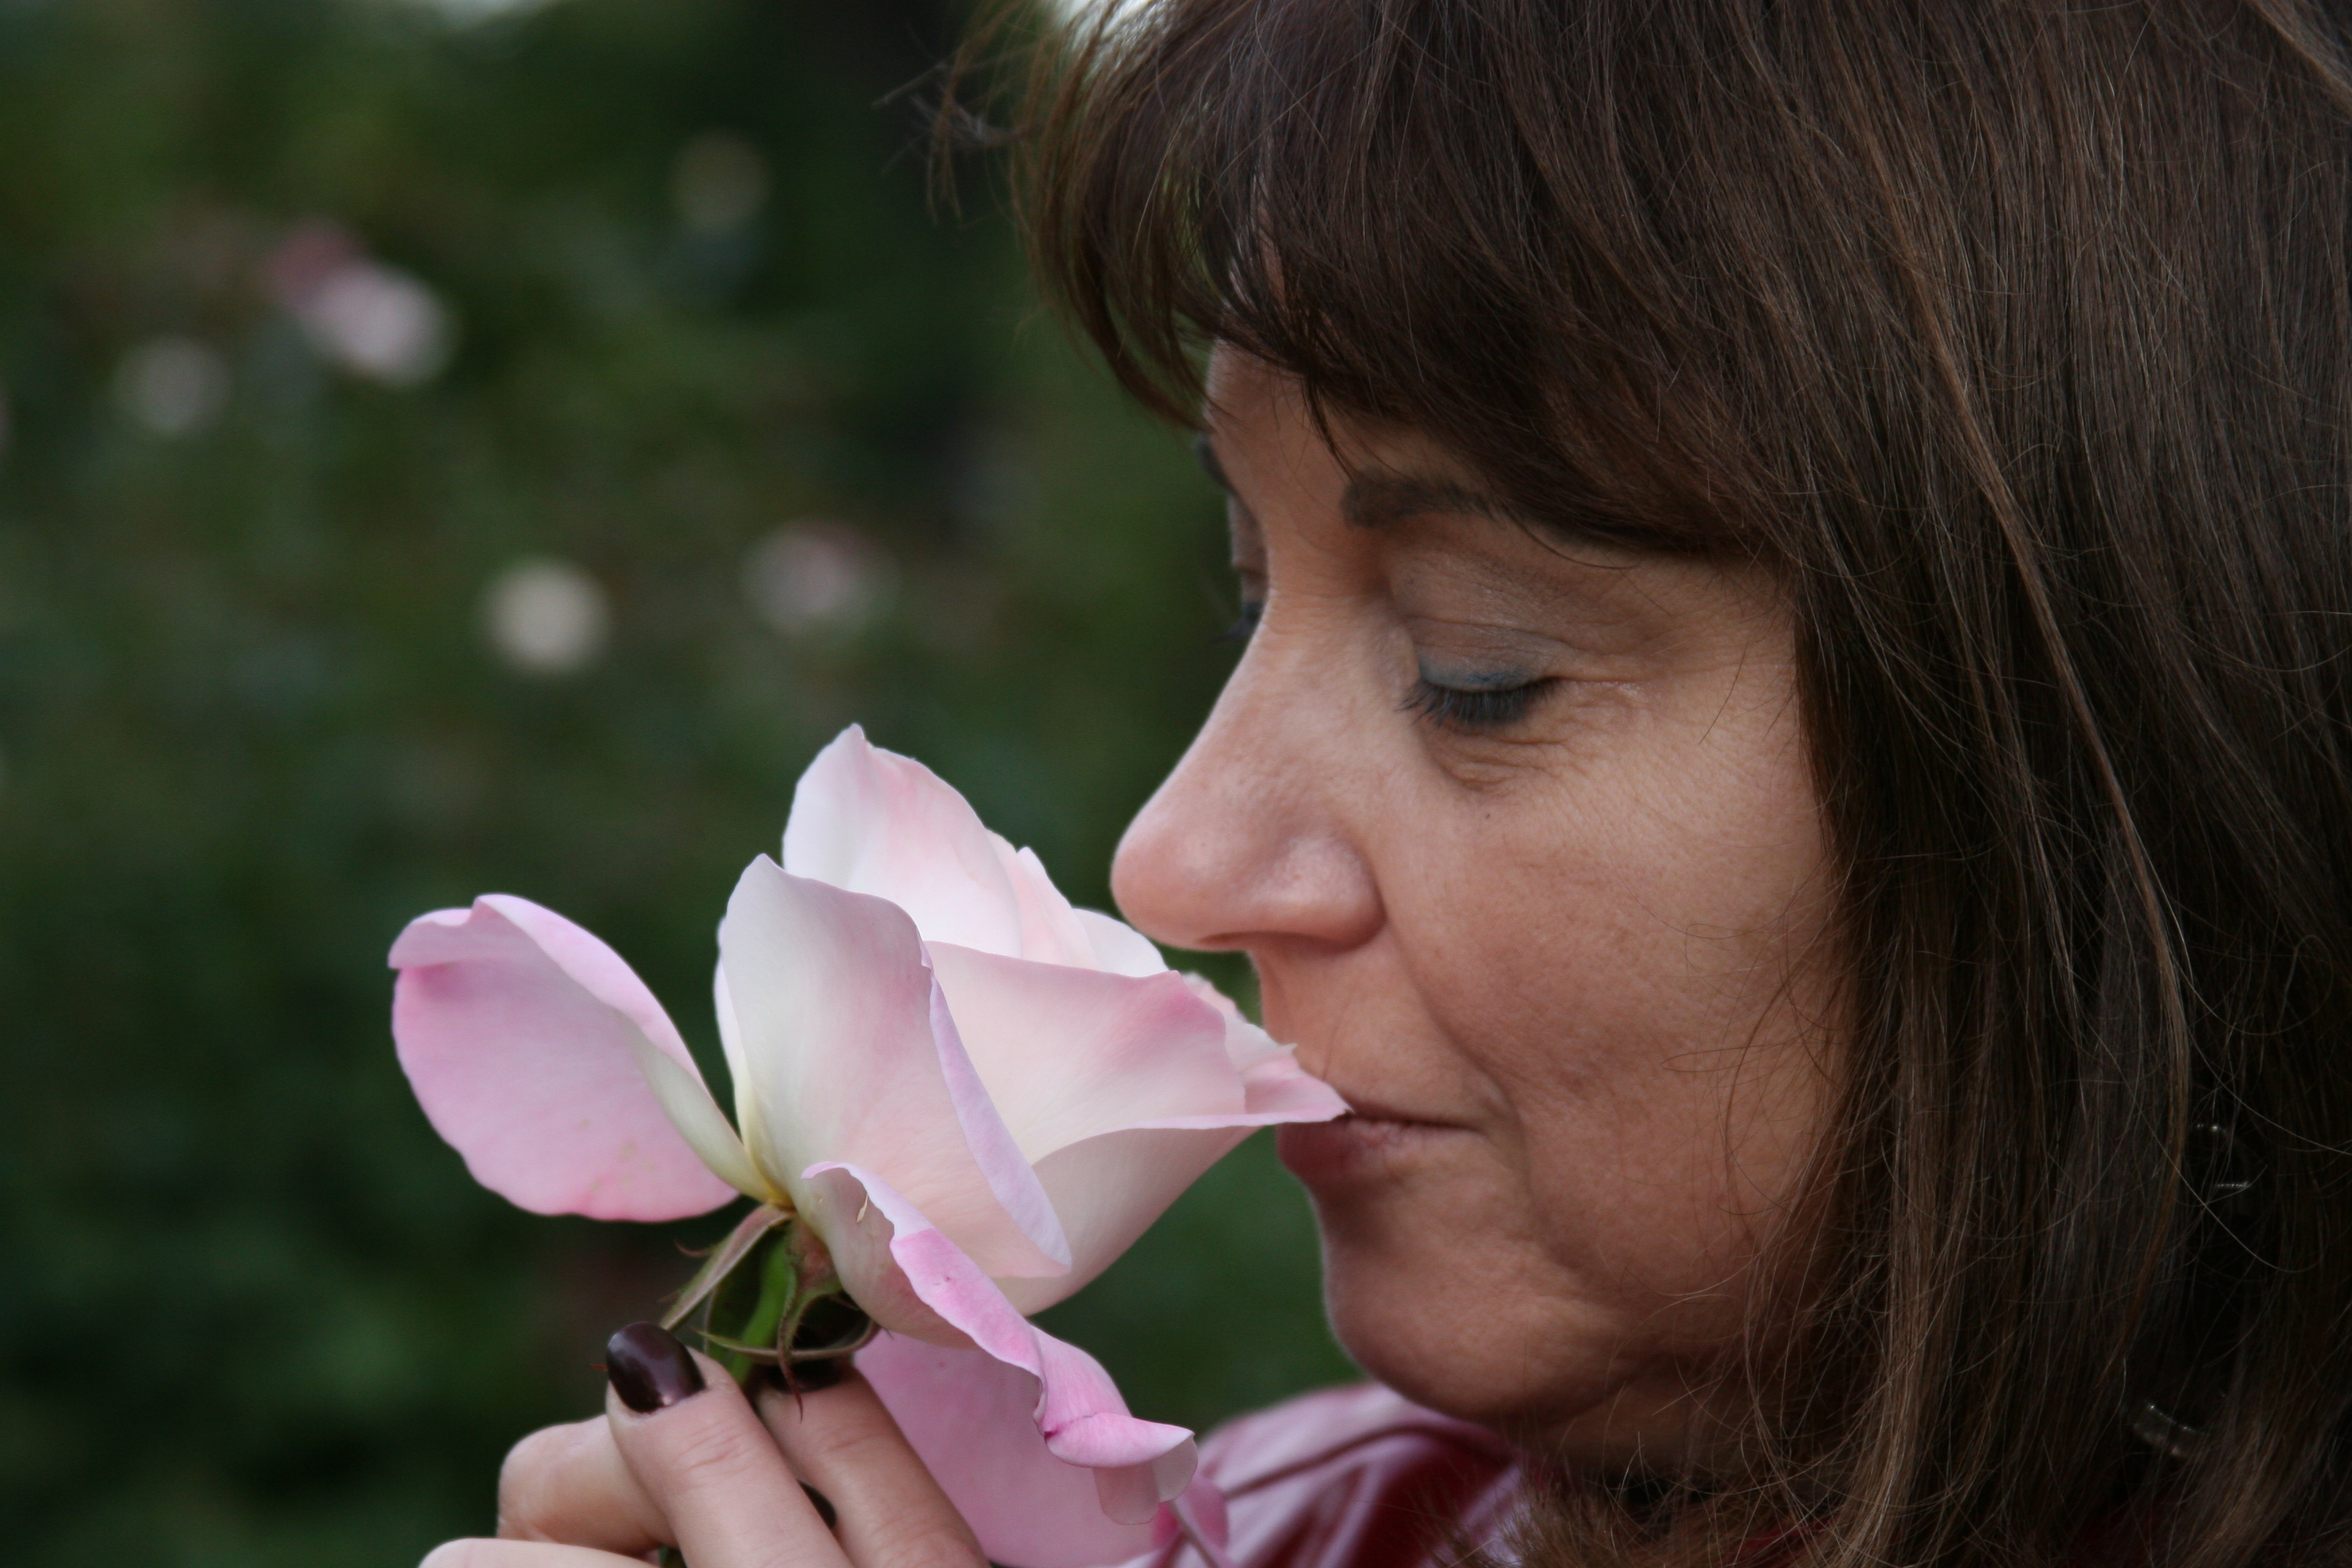 Me sniffing a rose from the Rose Garden - taken by my husband